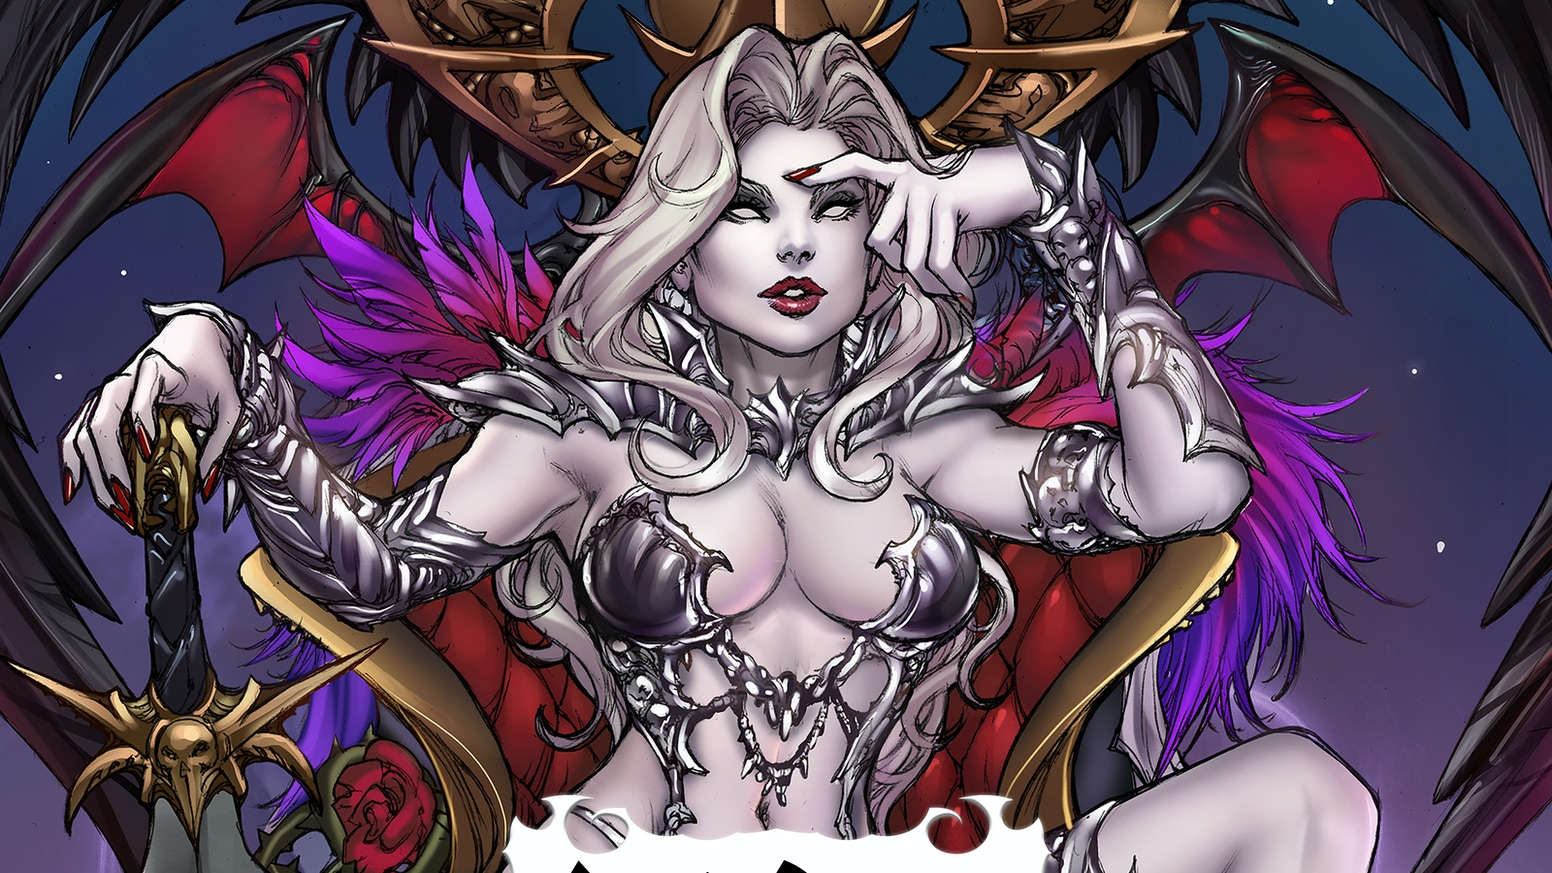 Damnation Game #1 is now available for purchase at Lady Death Store!